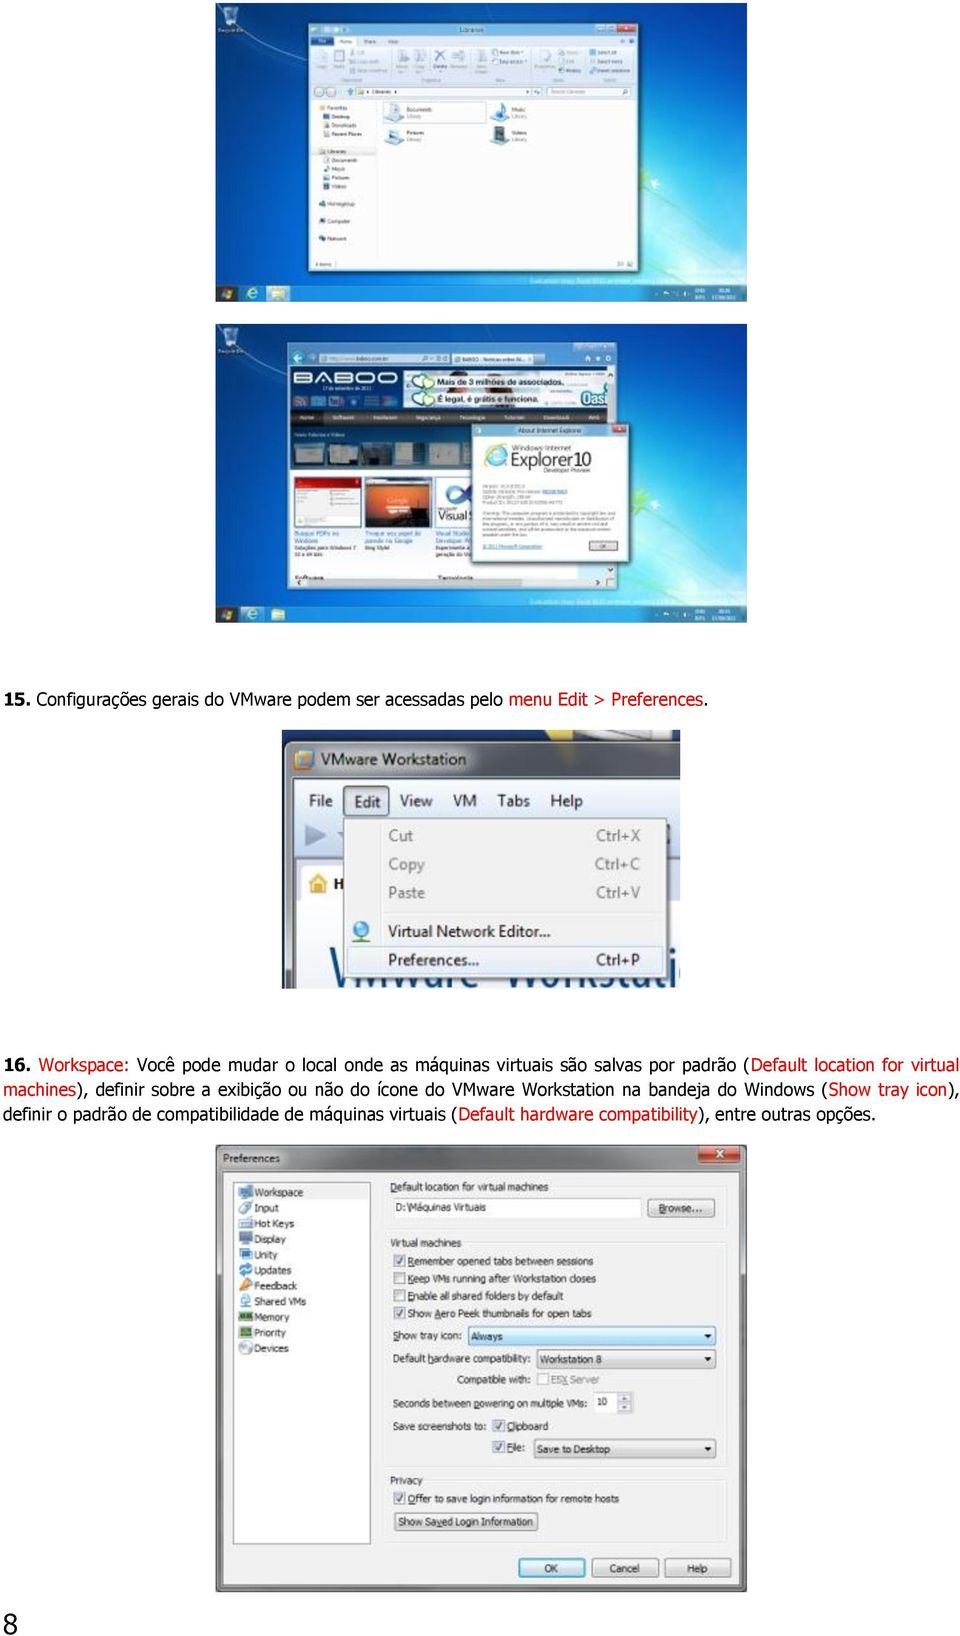 virtual machines), definir sobre a exibição ou não do ícone do VMware Workstation na bandeja do Windows